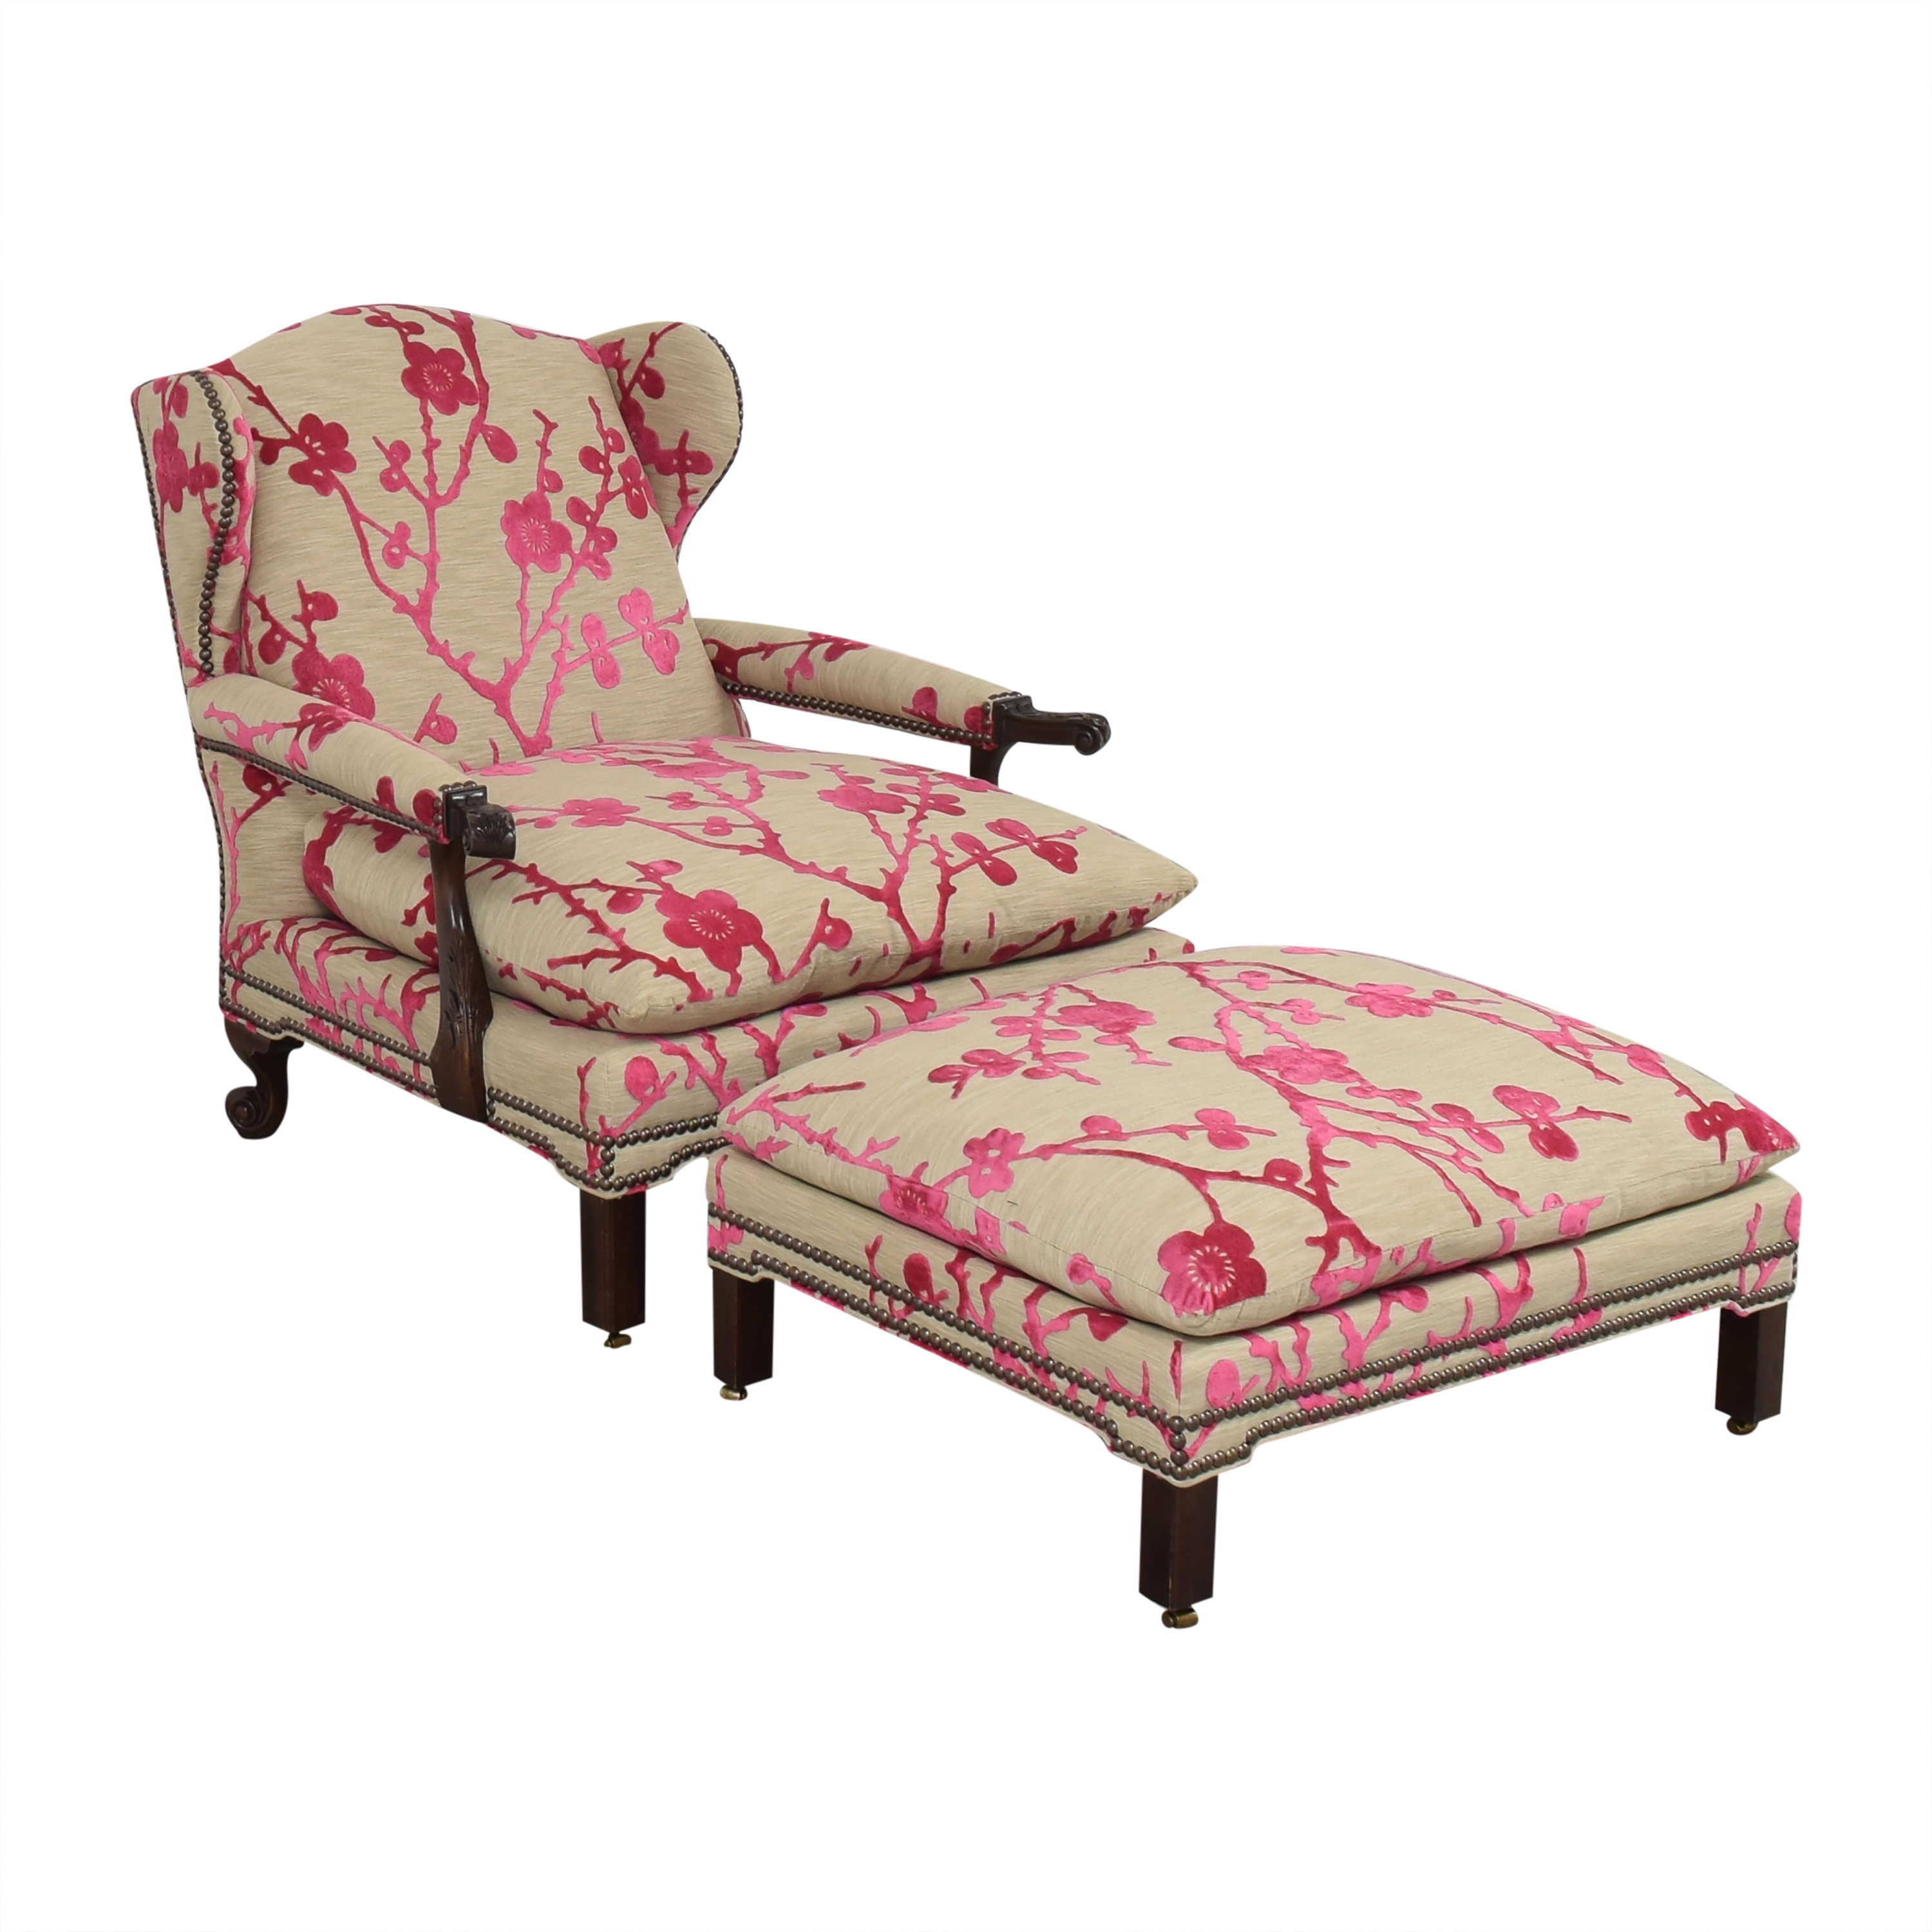 Hickory Chair Hickory Chair Custom Lounge Chair with Ottoman multi